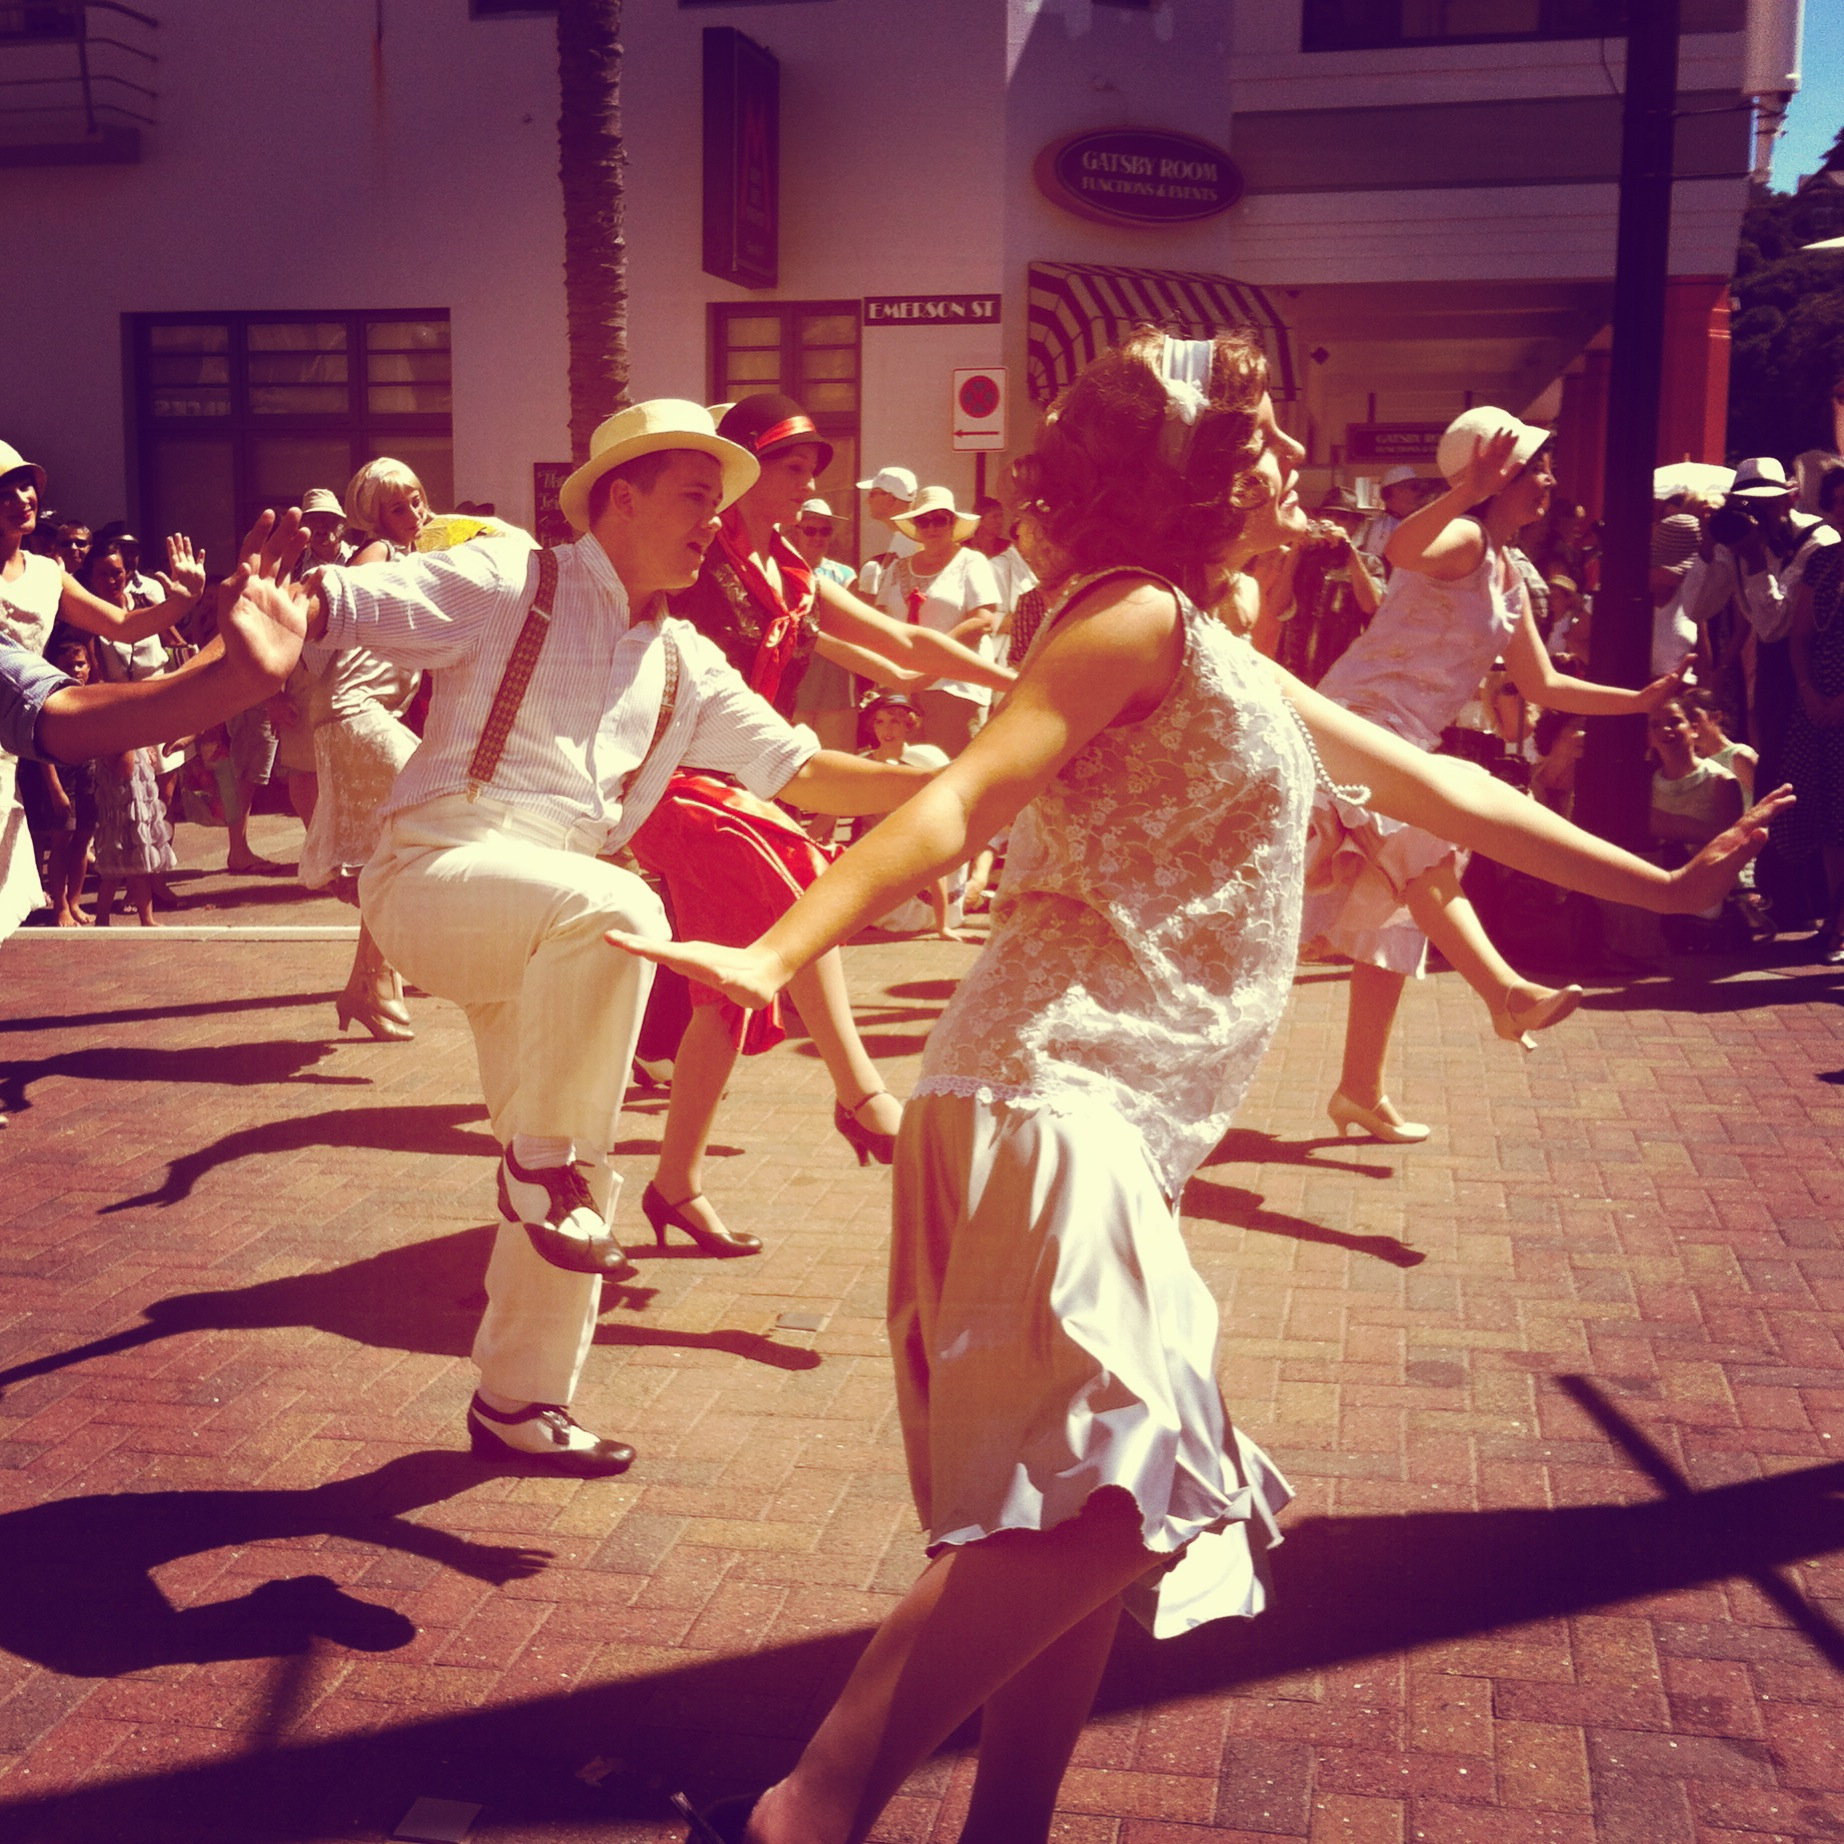 Dancing in the streets!